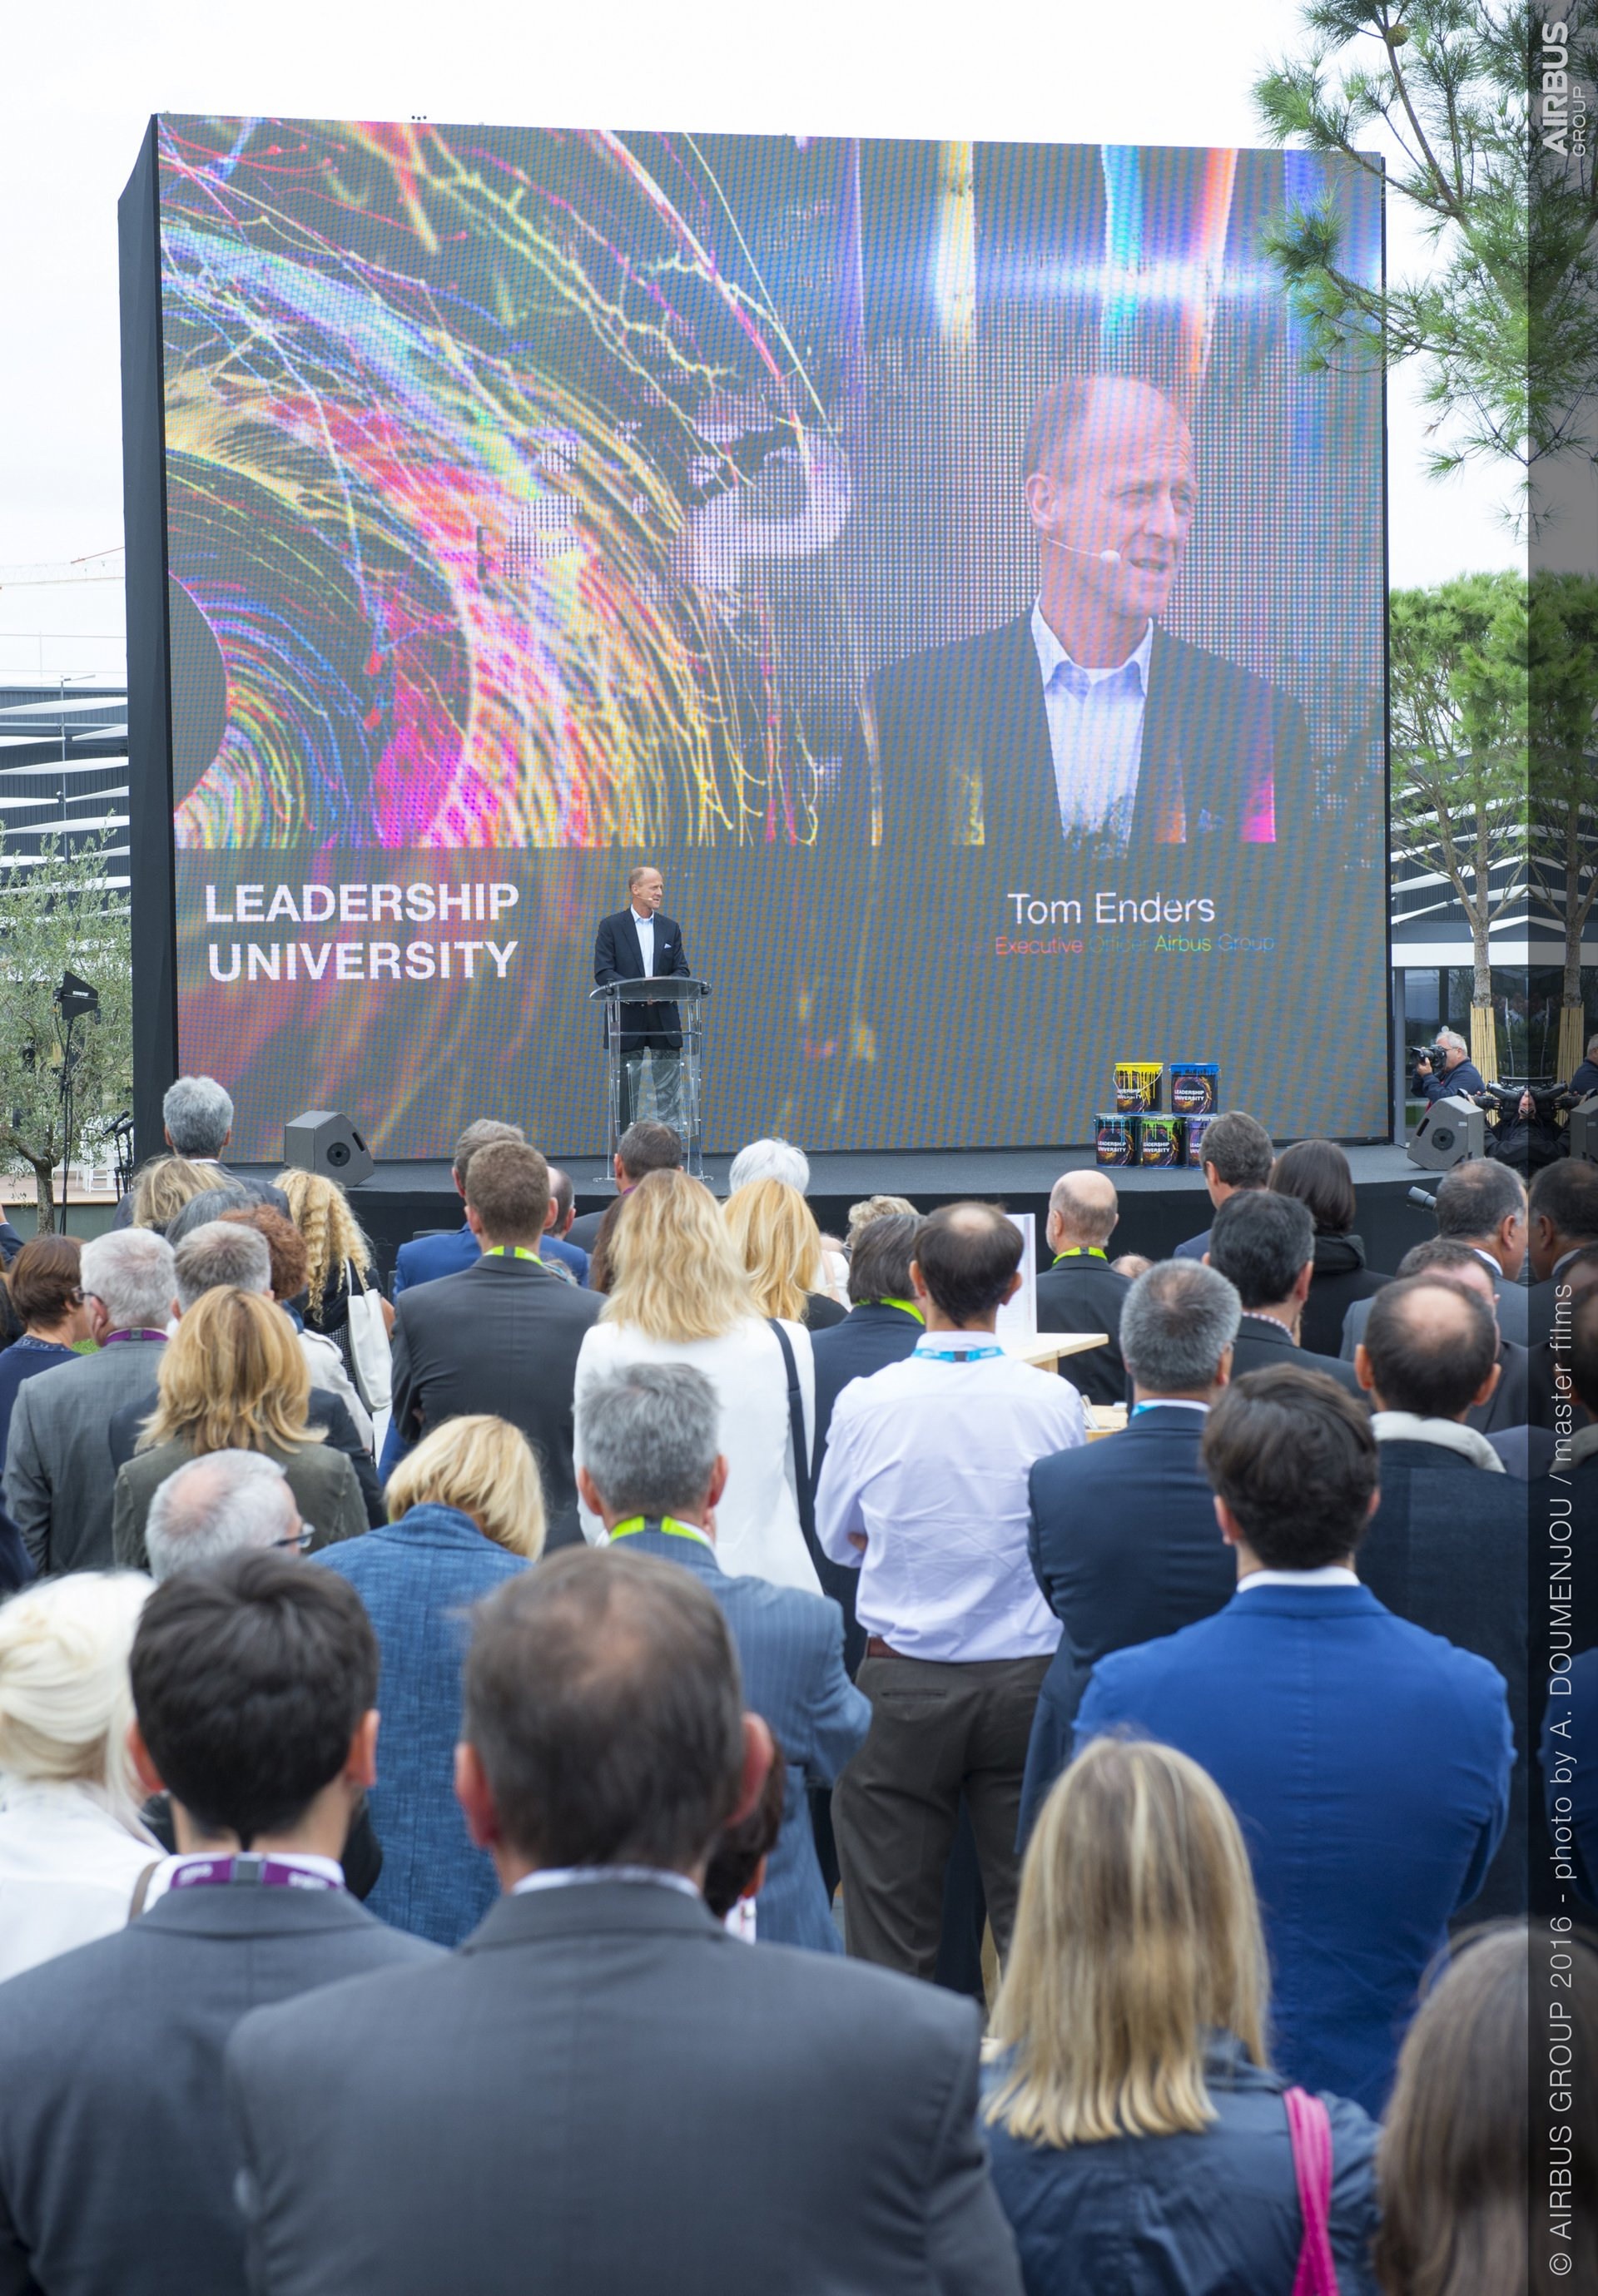 CEO Tom Enders during the Leadership University inauguration